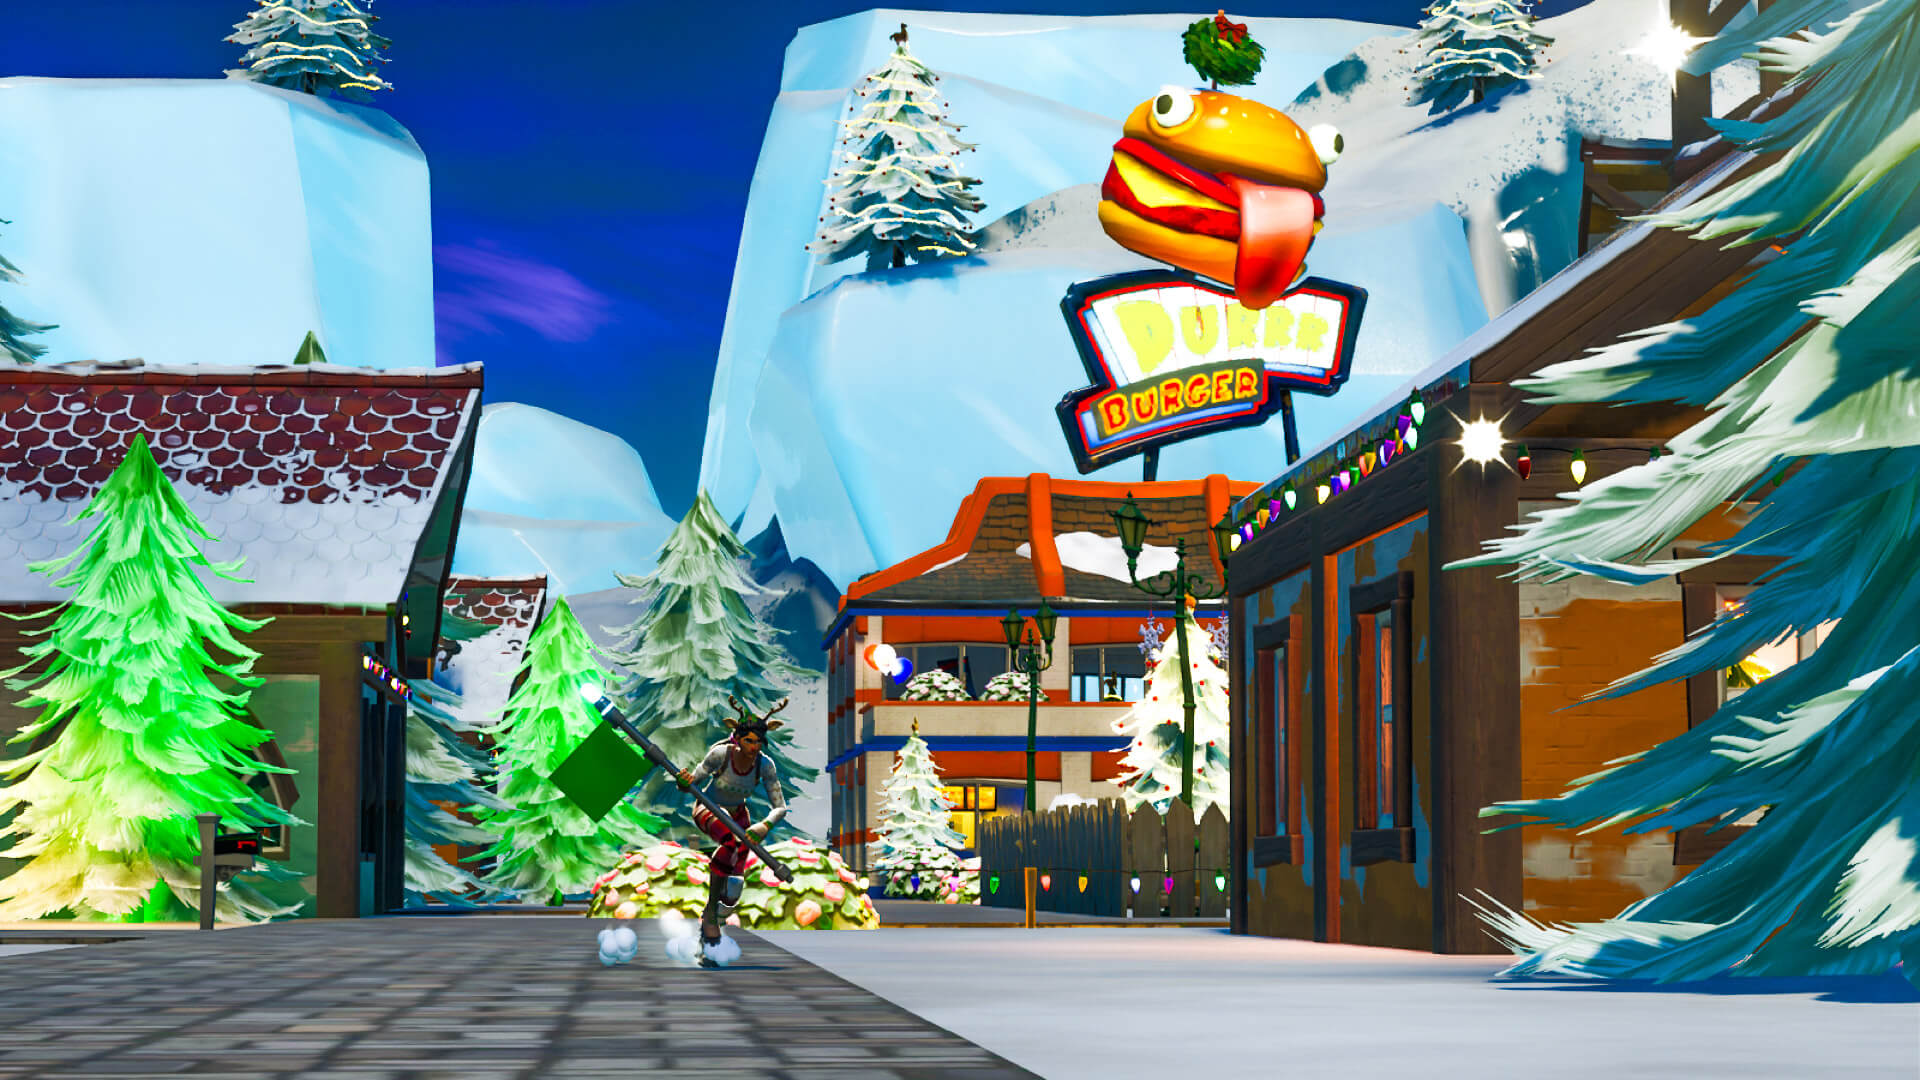 DURRR BURGER SAVES CHRISTMAS